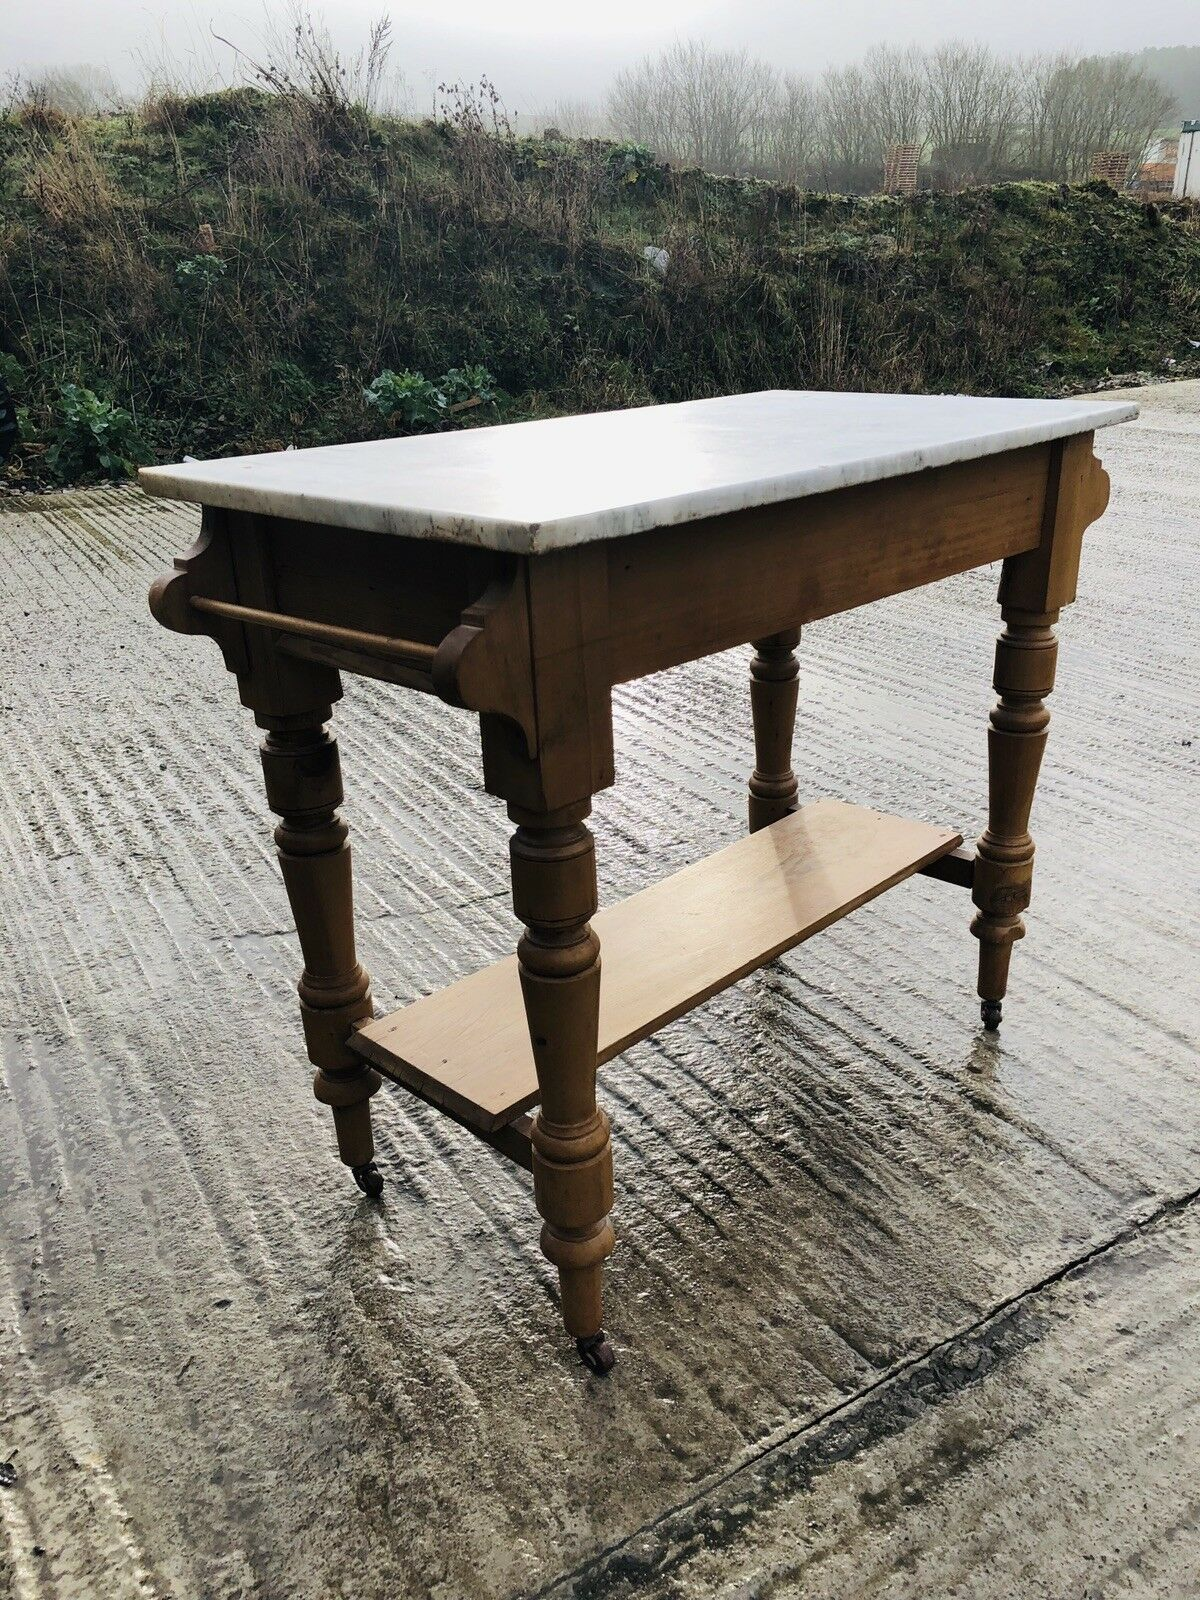 Stunning Antique Pine And Marble Top Kitchen Island Cart On Castors Ebay Marble Top Kitchen Island Marble Kitchen Island Antique Kitchen Island